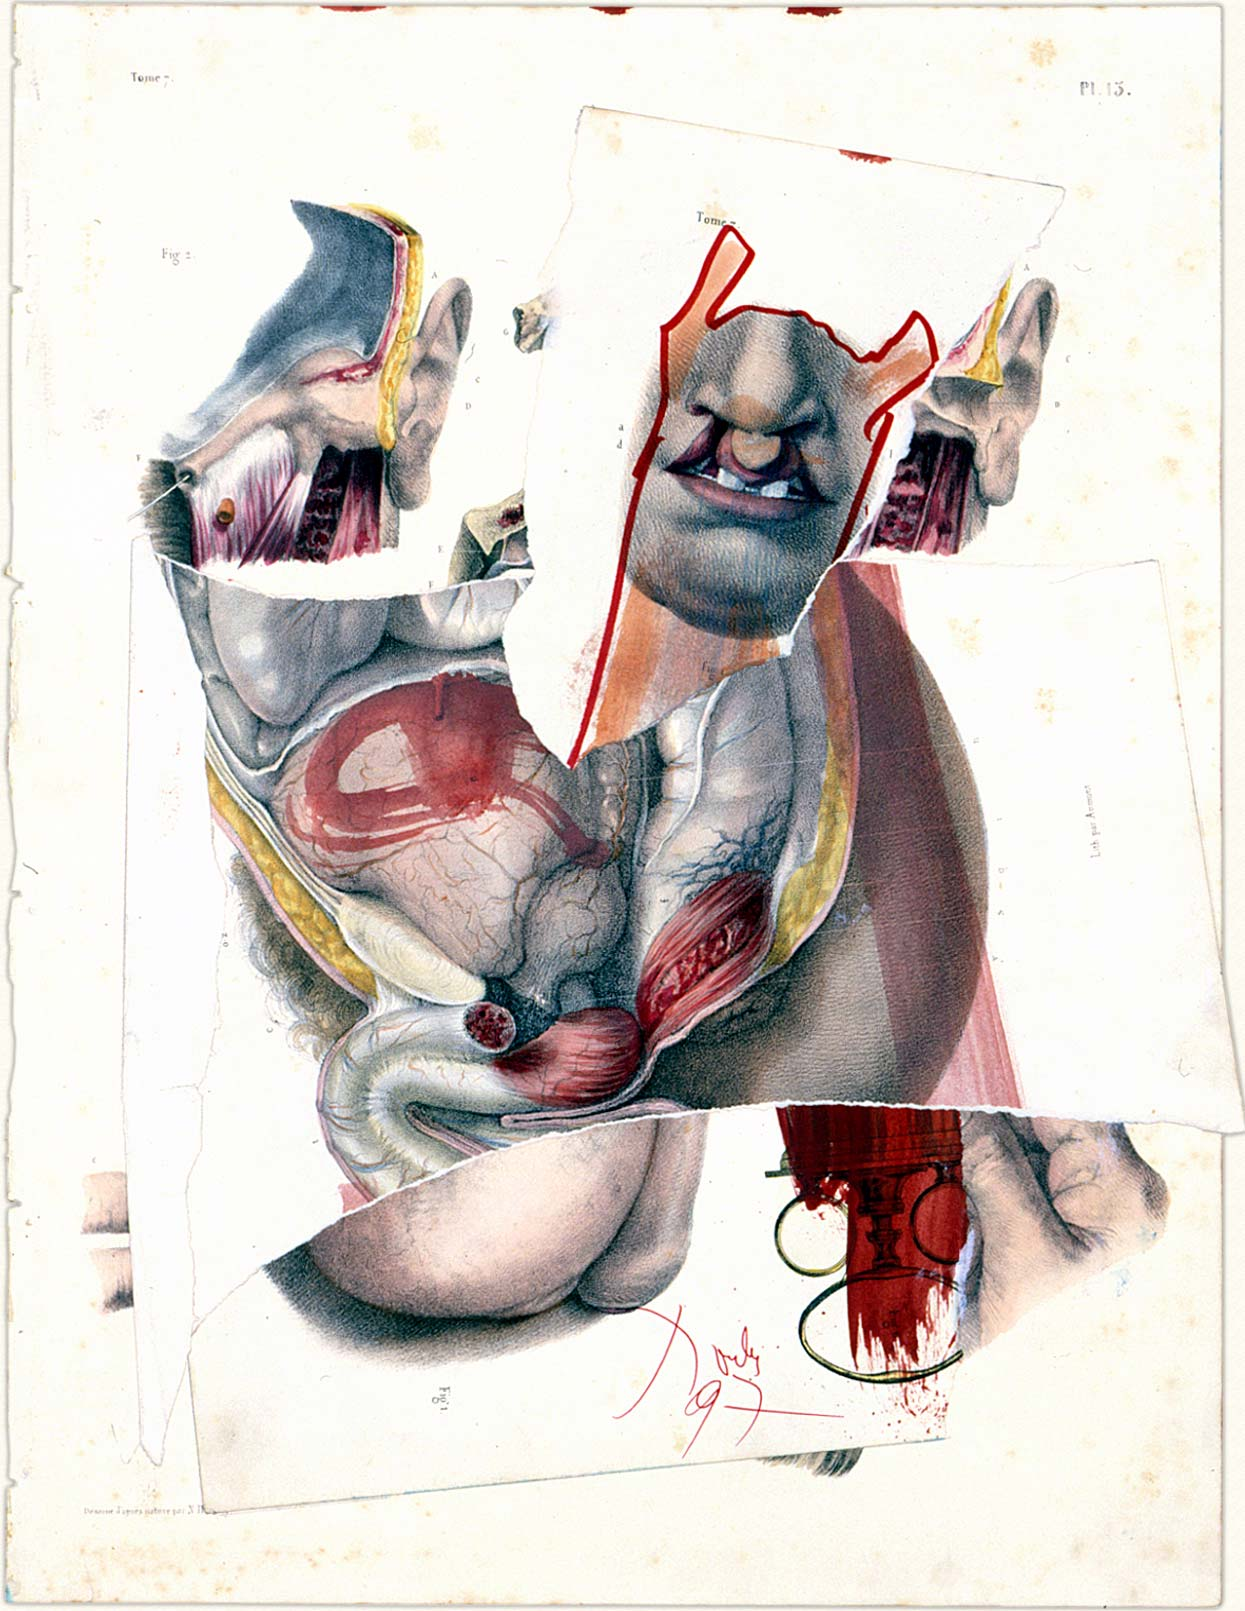 Dado's collage: Untitled, 1997